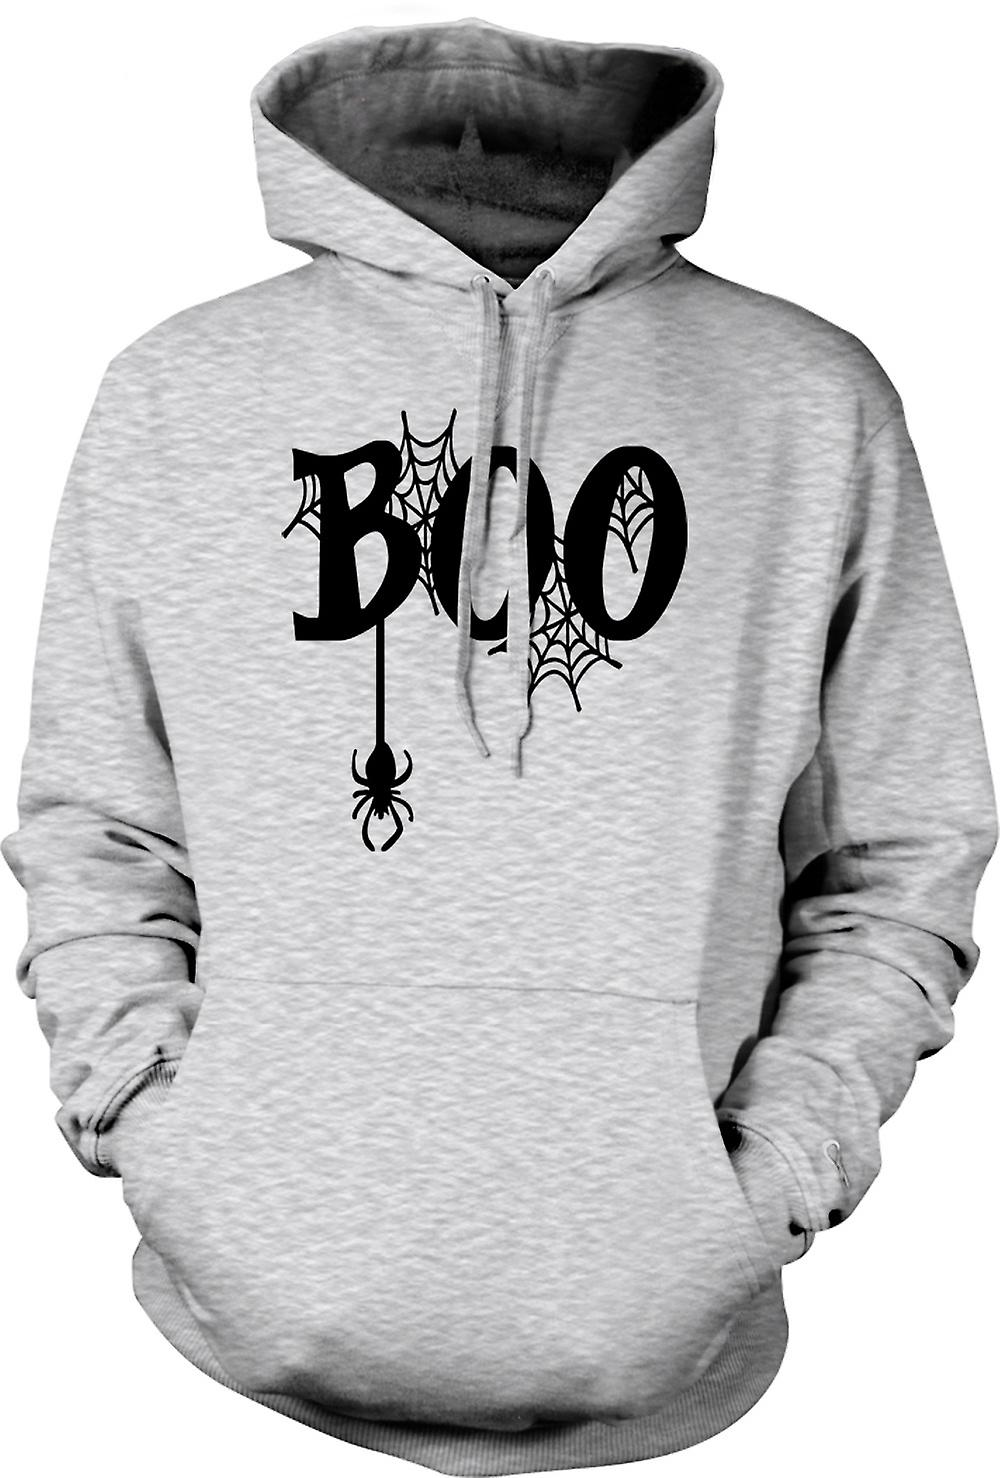 Mens Hoodie - Boo - Spiders Web - Funny